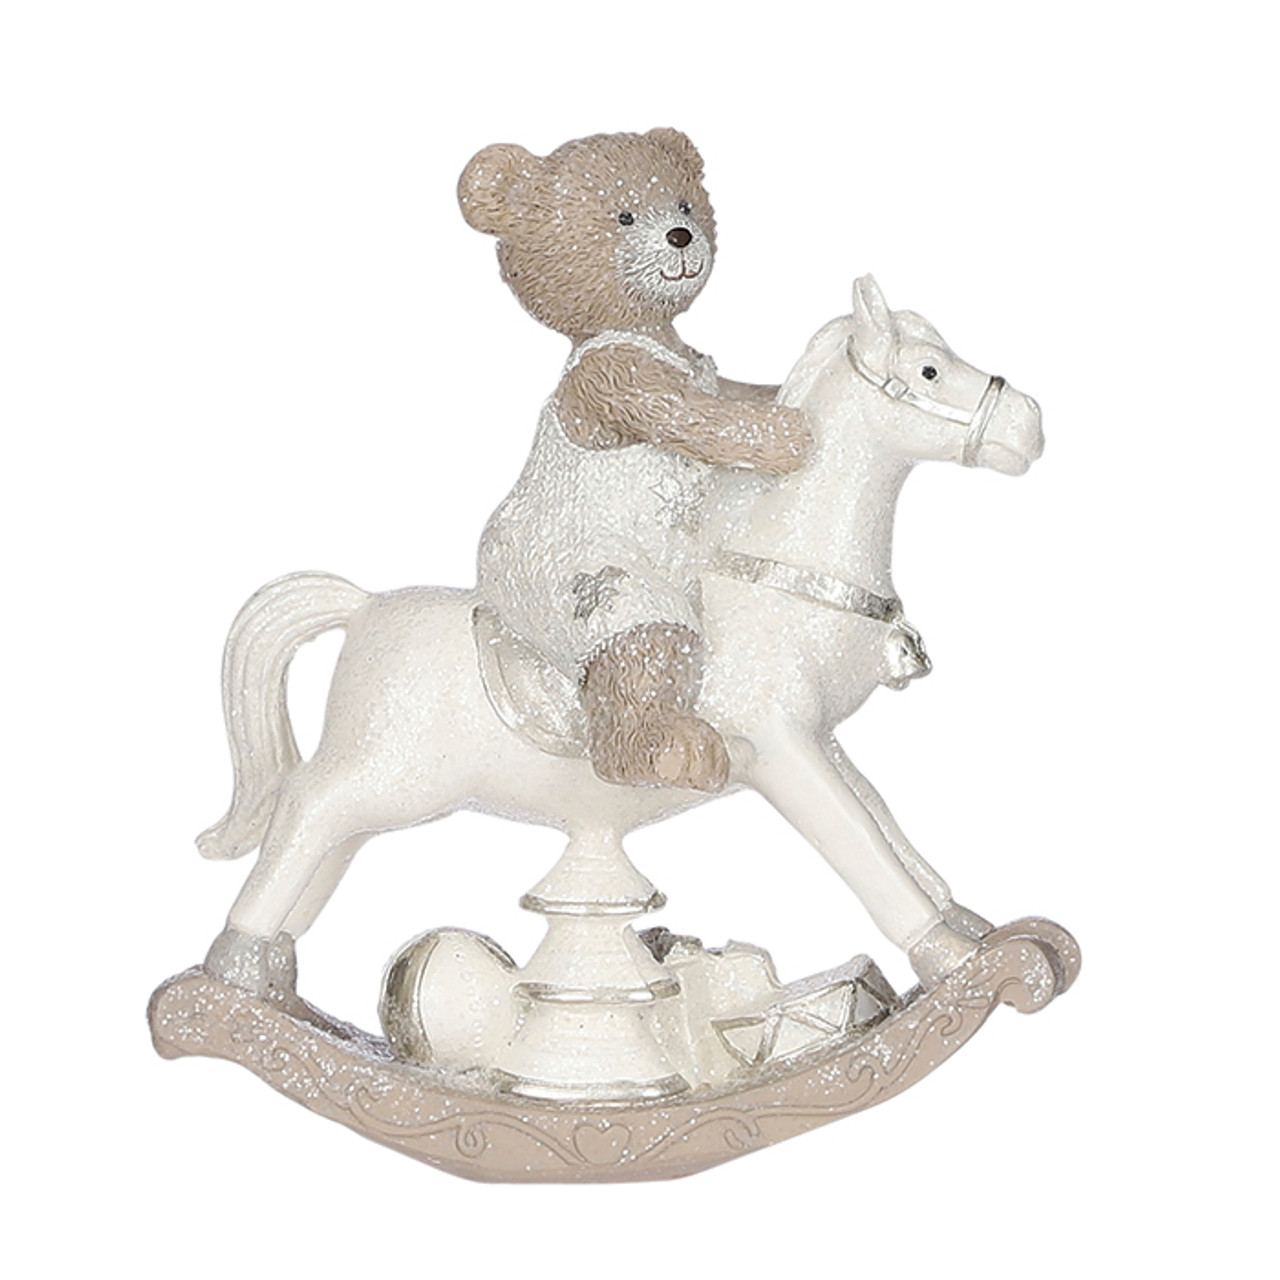 Bear Brown On Rocking Horse Ornament 13x6 5x15cm The Orchard Garden Centre